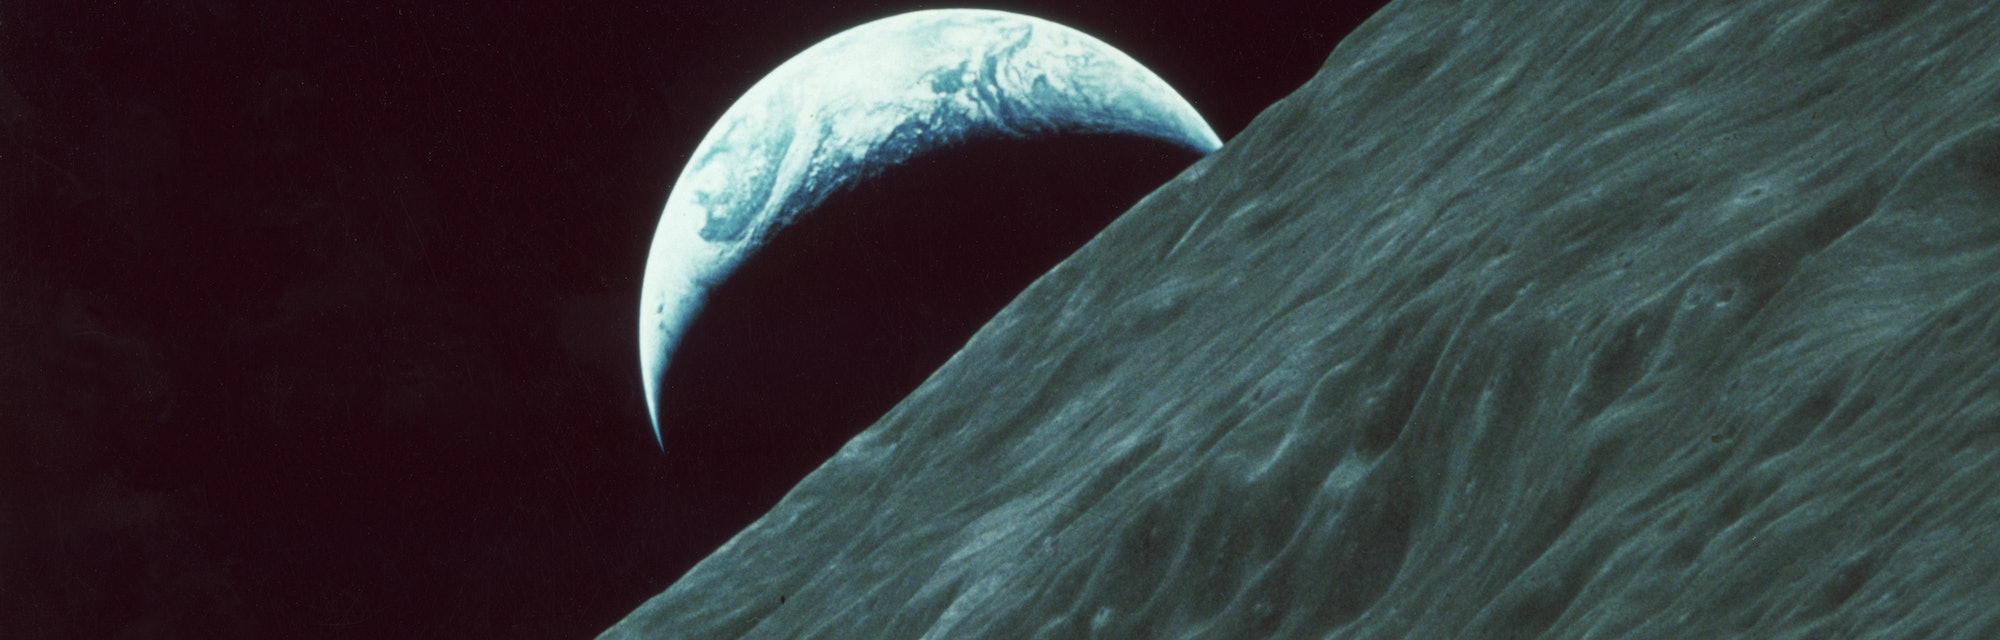 The planet Earth as seen from the surface of the moon during the Apollo 17 lunar landing mission, De...